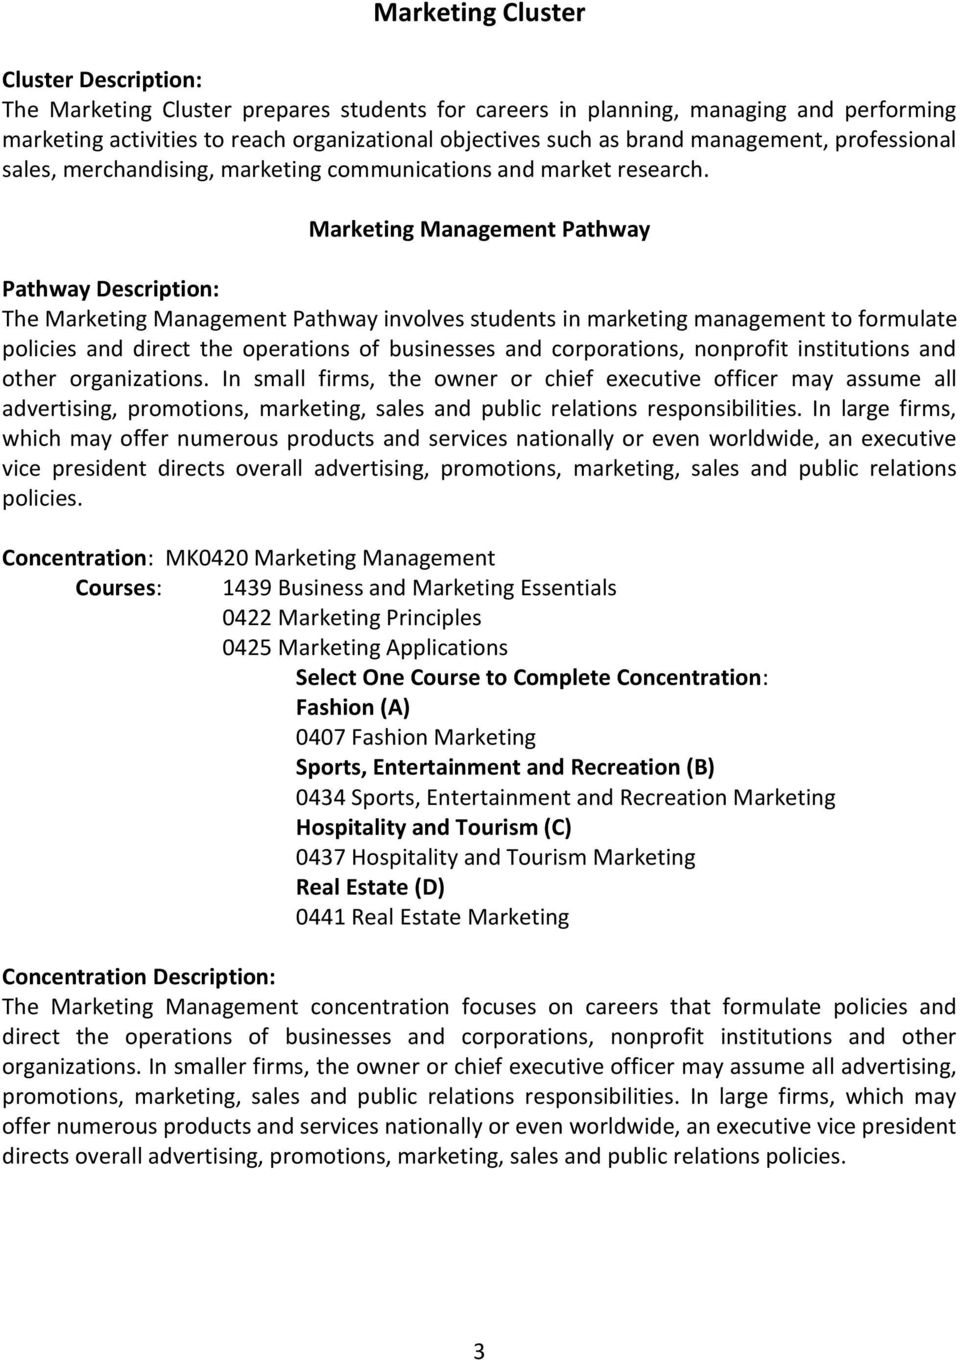 Marketing Management Pathway Pathway Description: The Marketing Management Pathway involves students in marketing management to formulate policies and direct the operations of businesses and